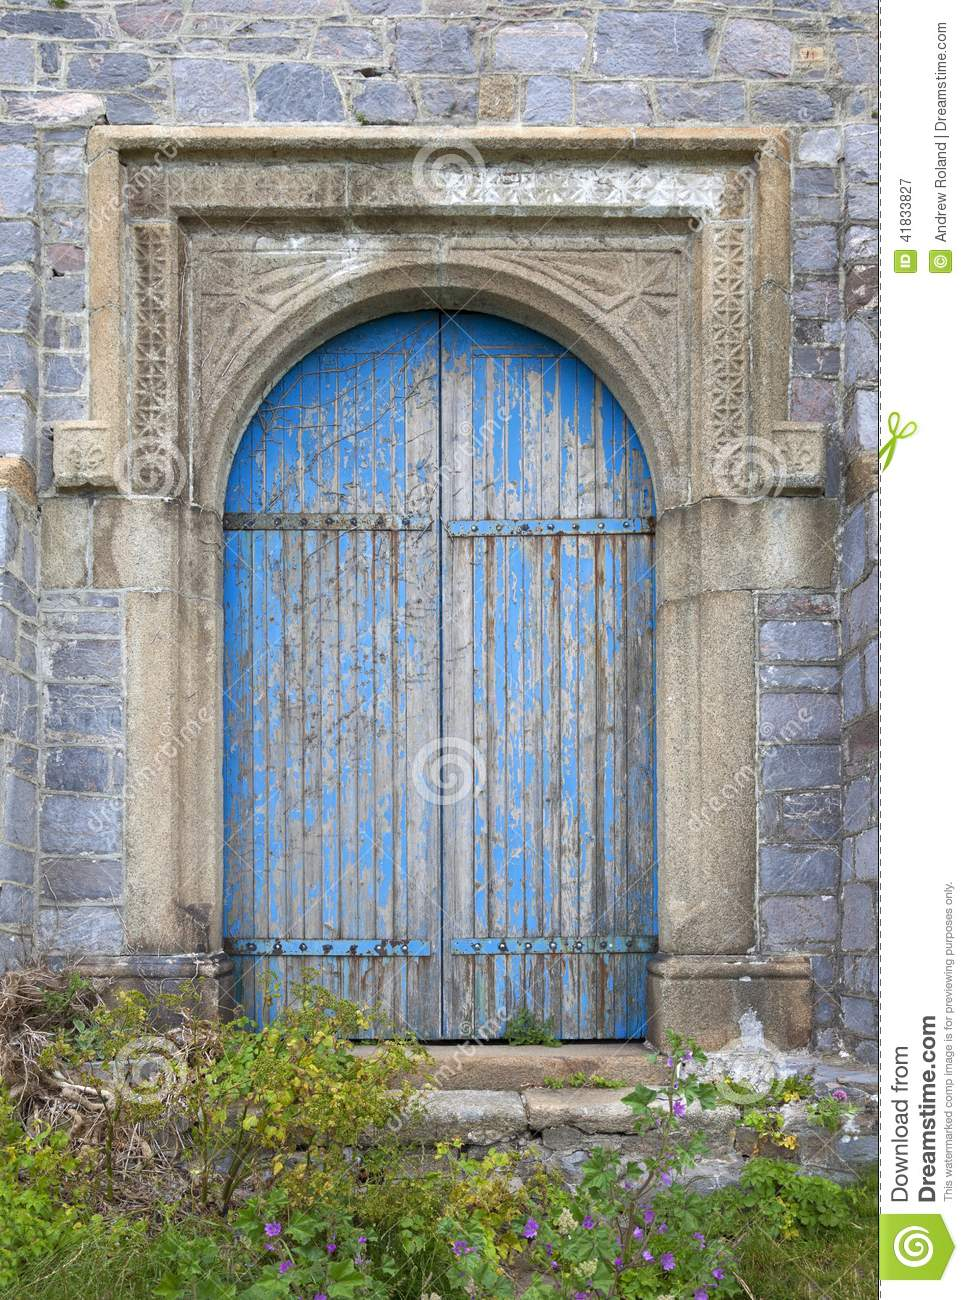 Vieille porte de ch teau photo stock image 41833827 for Vieille porte de ferme